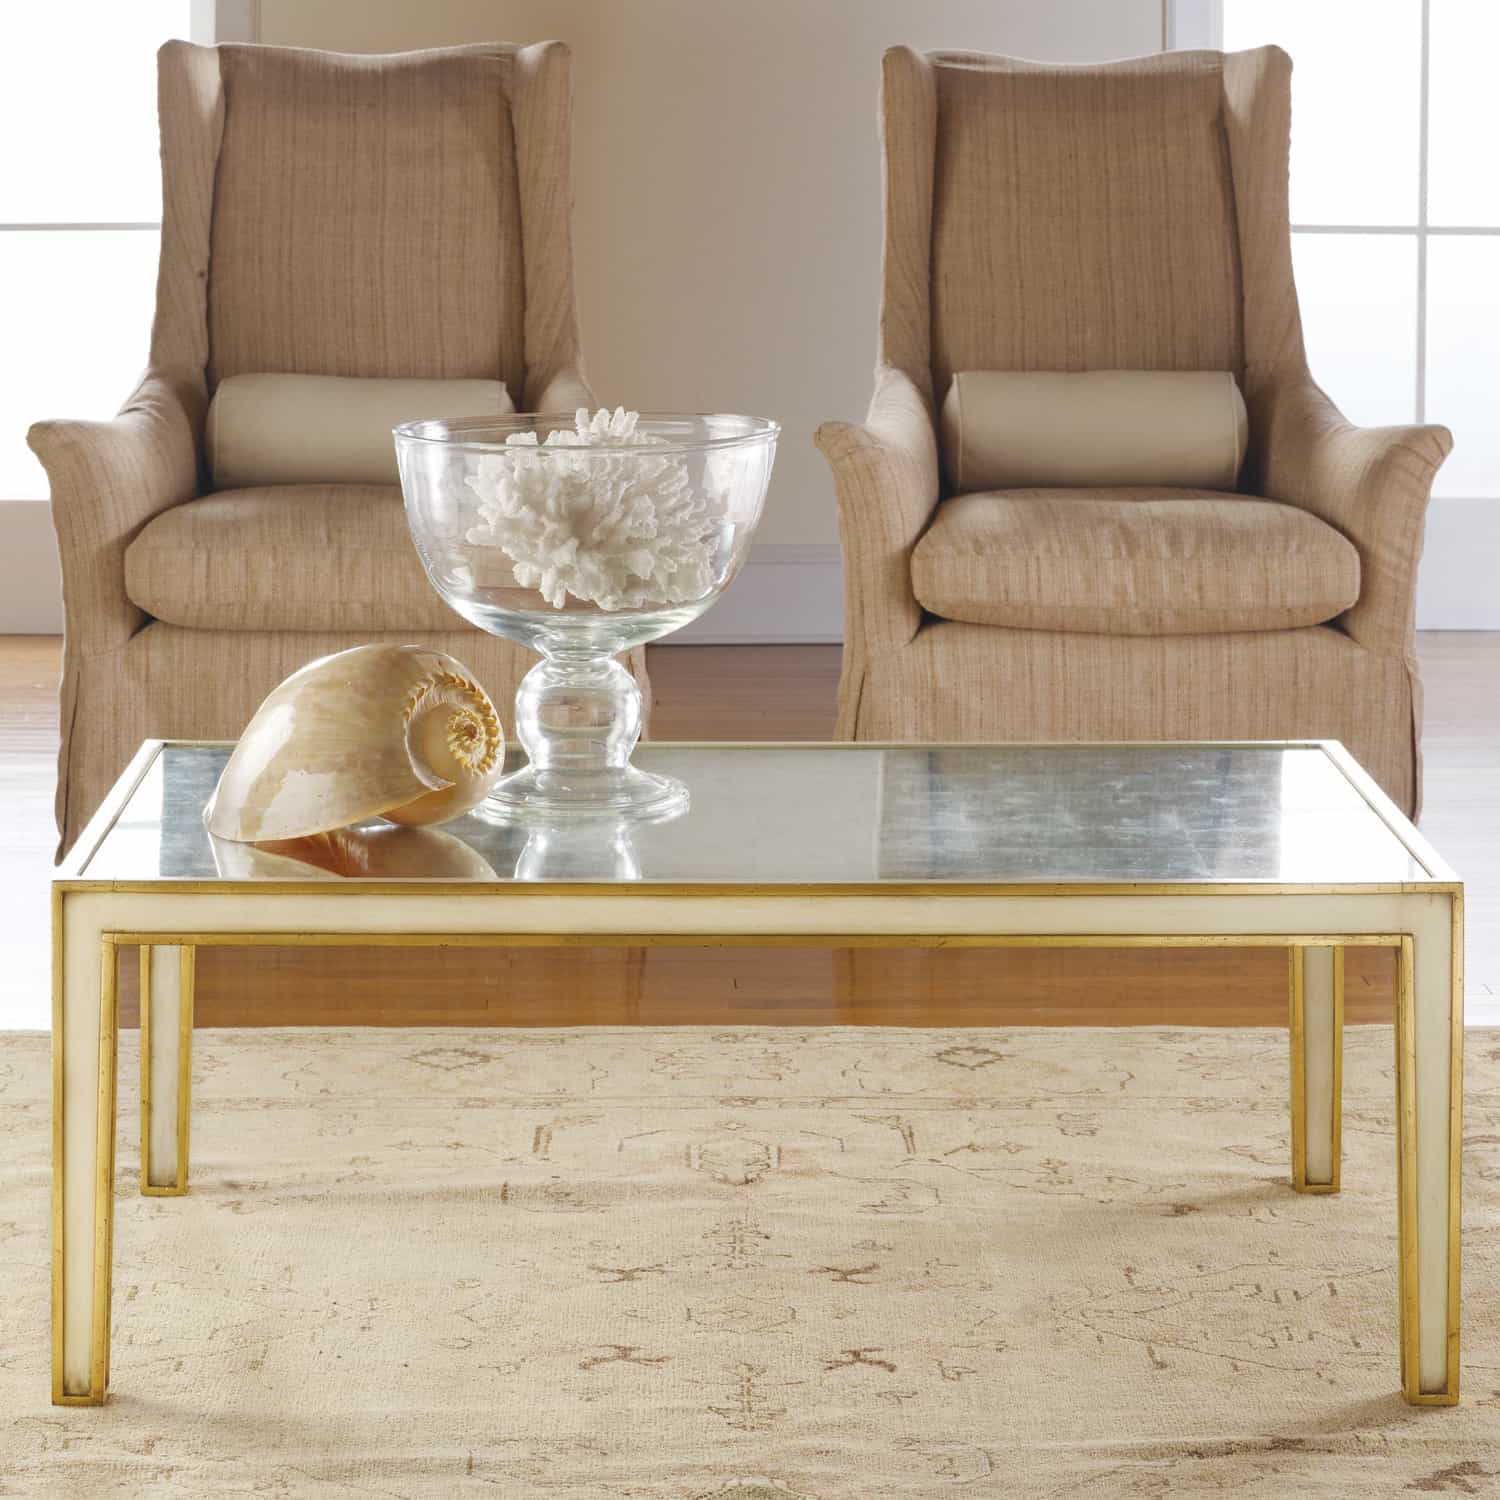 Gold Classic Coffee Table With Sofa And Centerpieces Decor (Image 9 of 30)